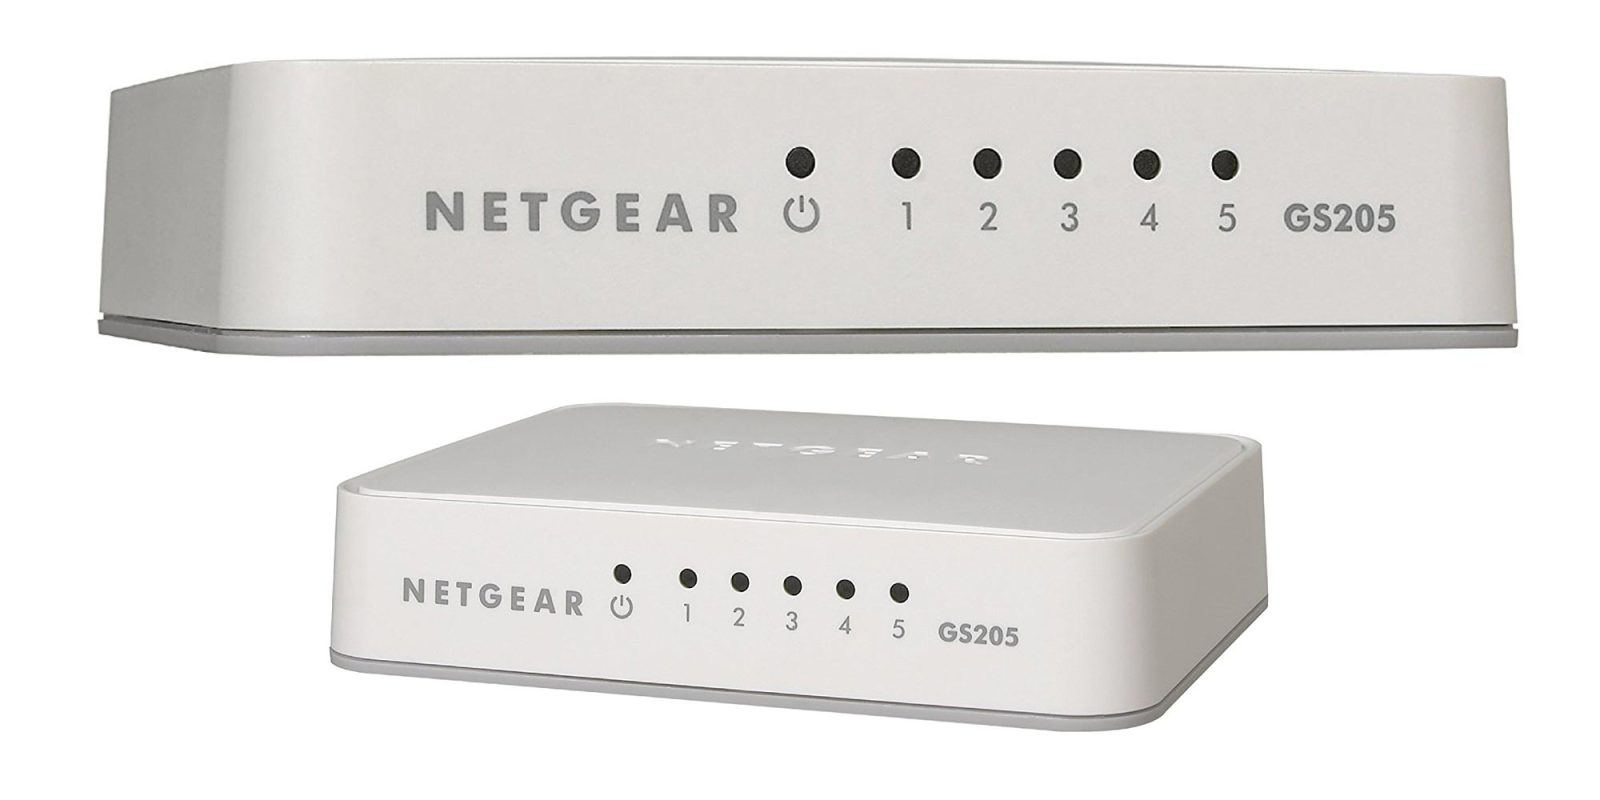 NETGEAR\'s 5-Port Gigabit Ethernet Switch hits $14 Prime shipped – ANITH